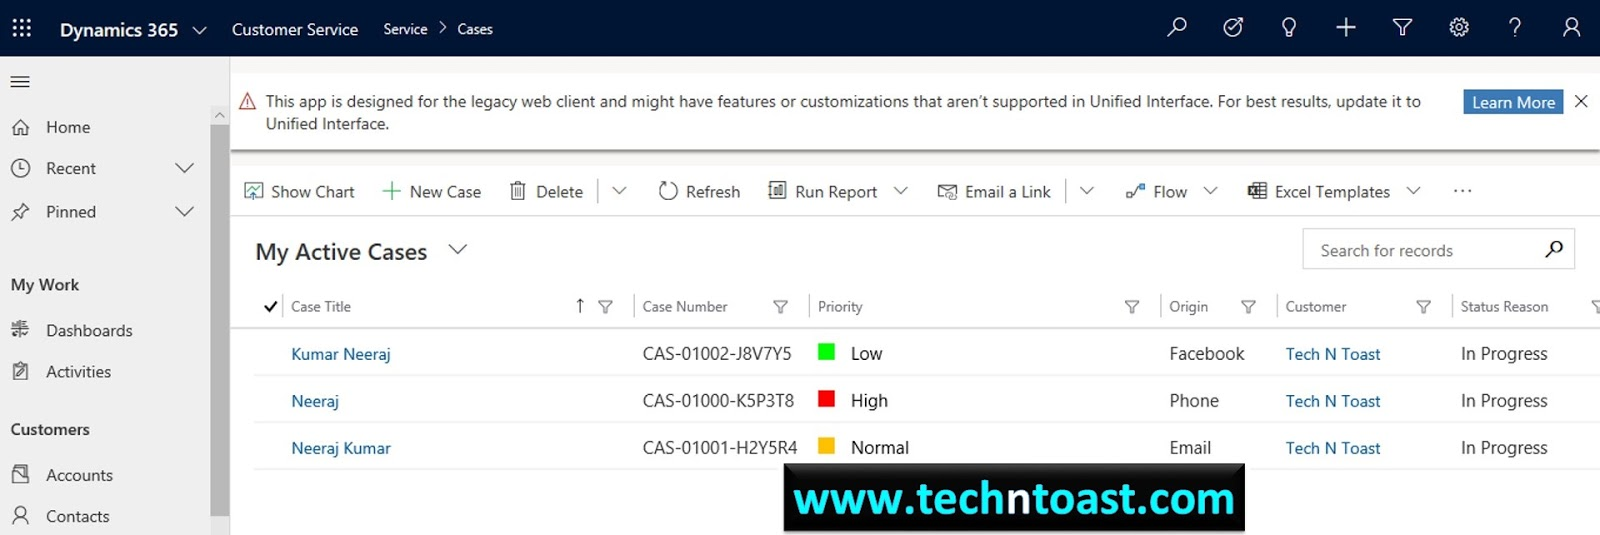 How to Customize entity views in Dynamics 365